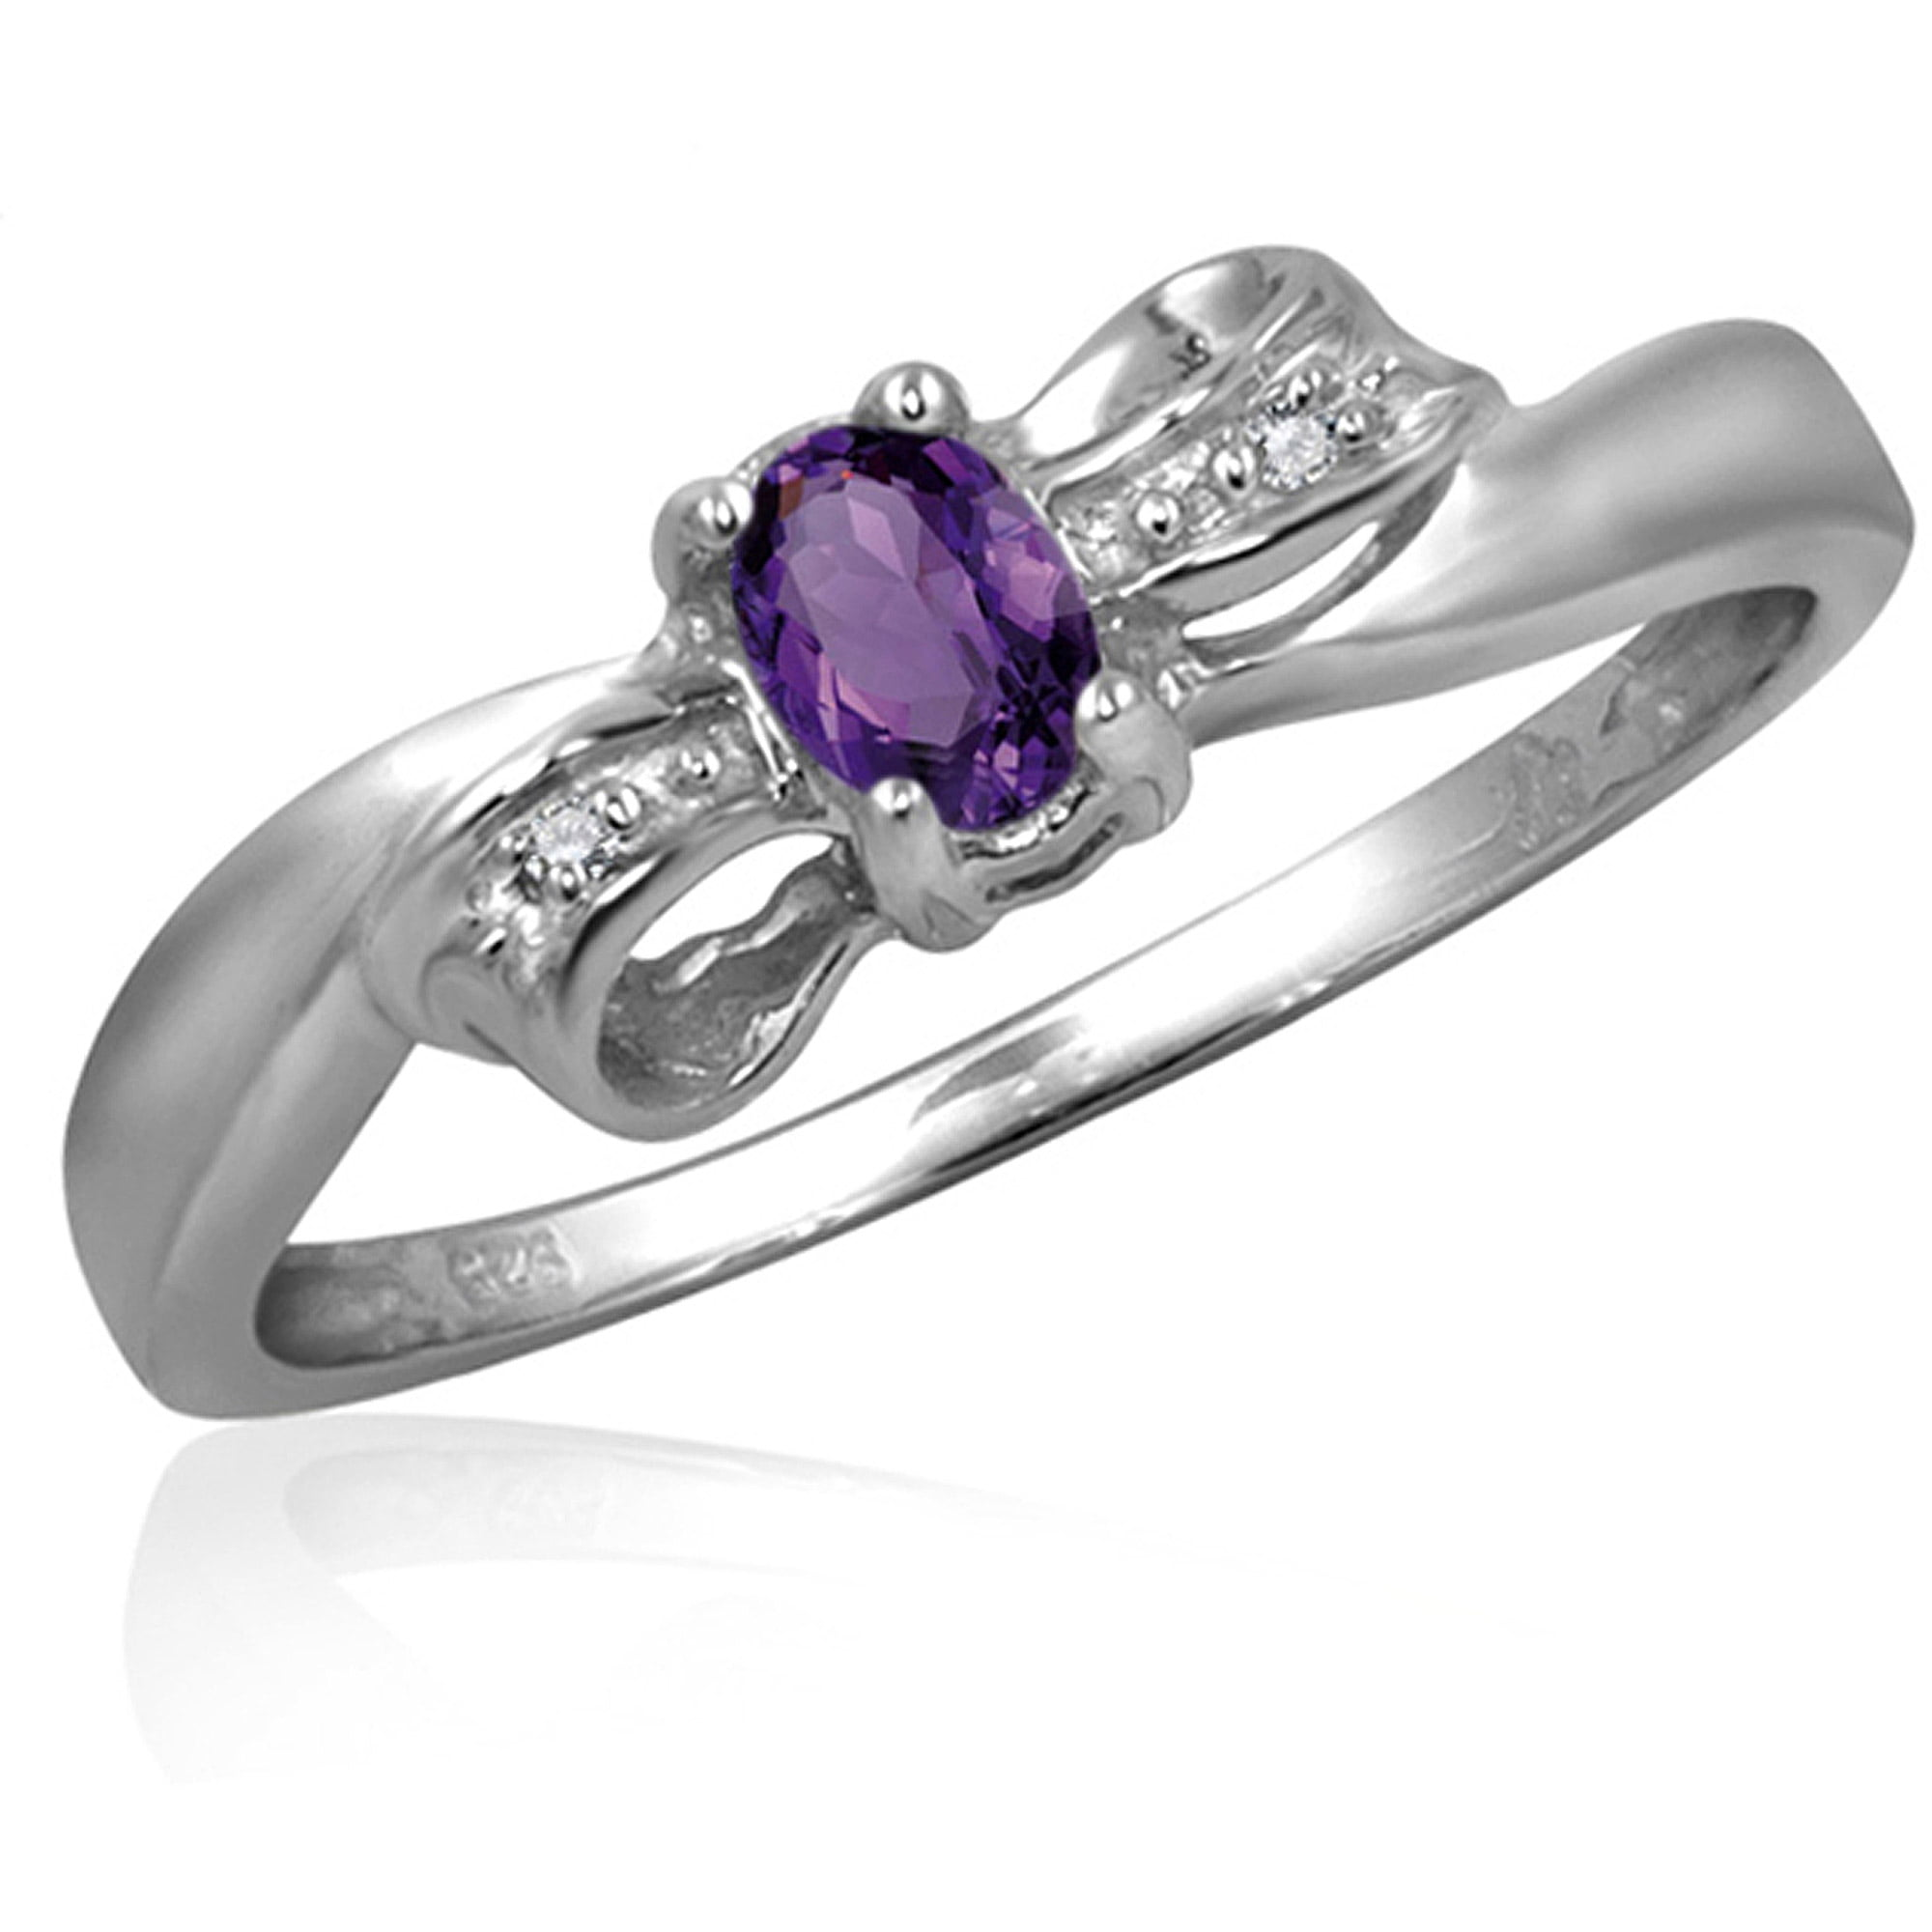 JewelersClub 0.15 Carat T.G.W. Amethyst Gemstone and White Diamond Accent Ring by JewelersClub